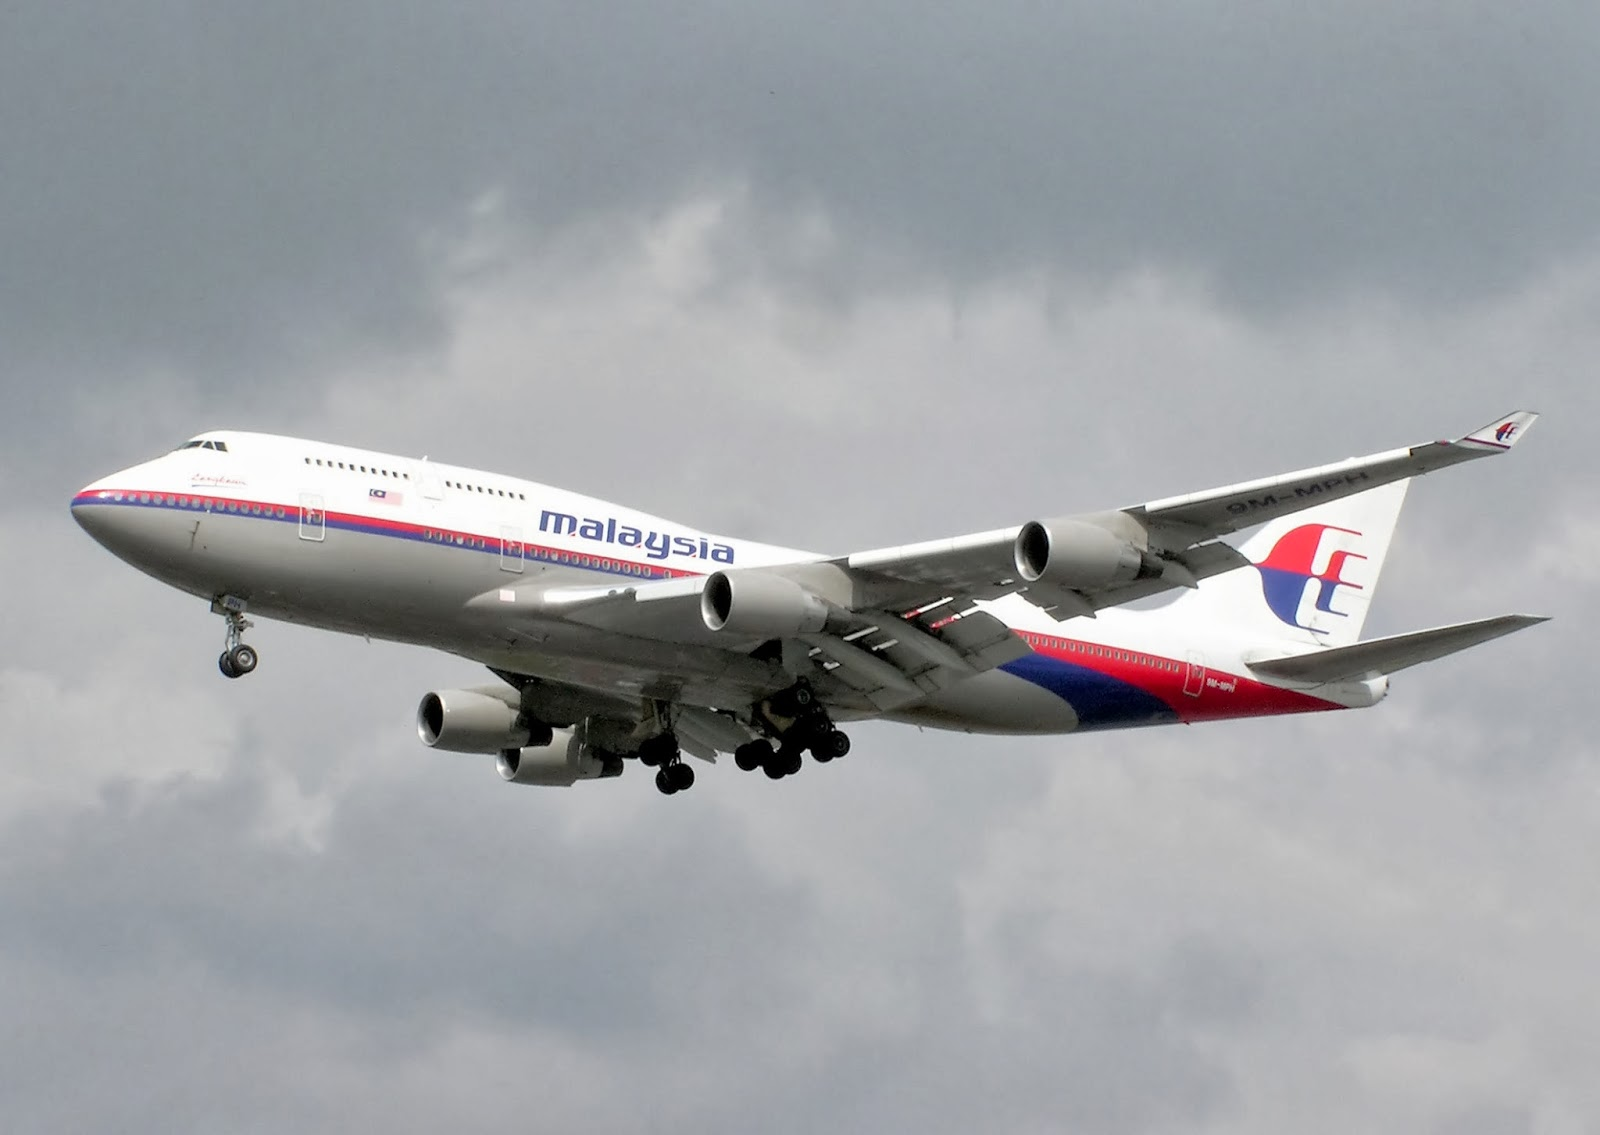 Bizarre: Missing Malaysia Airlines Passengers' Phones ring, But No One Answers